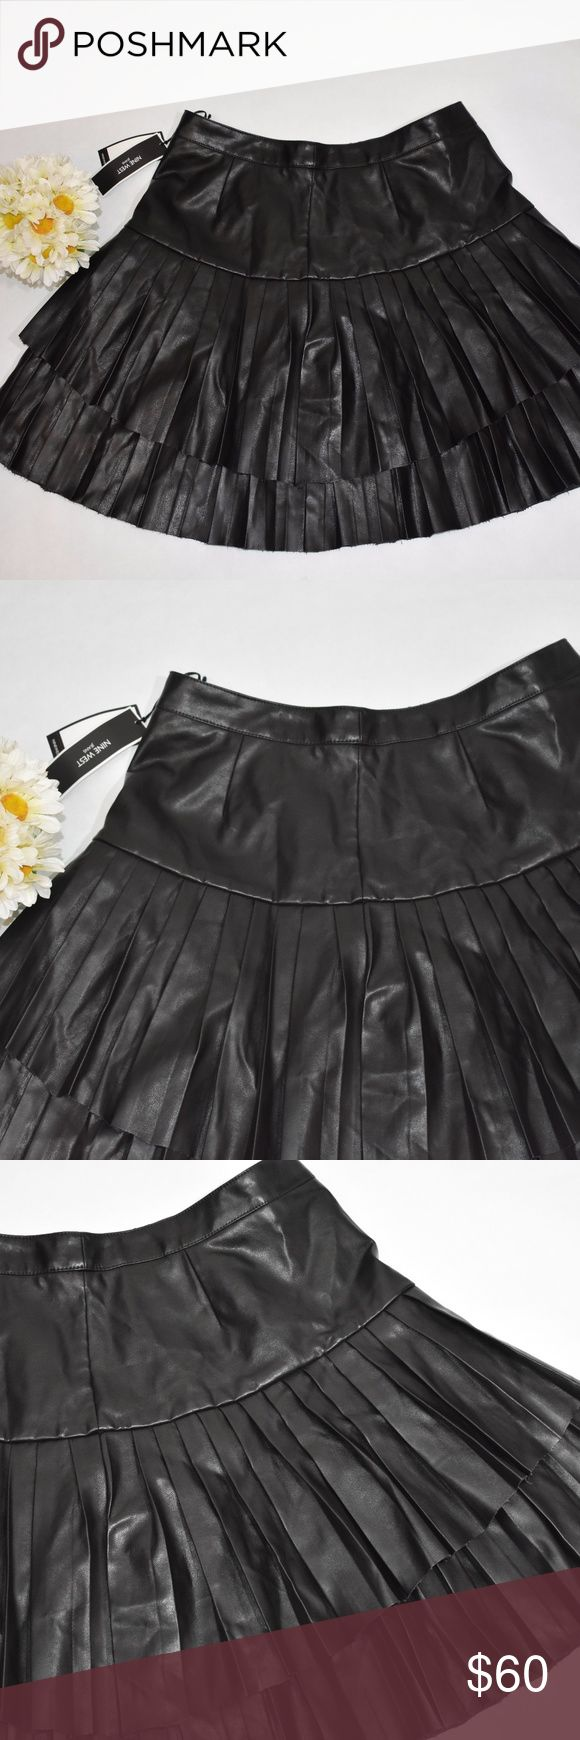 Nine west pleated leather skirt Isabelle size 8 Nine west pleated leather skirt Isabelle size 8 retail $98.50  Measurements were taken with garment laying flat and are approximately:  Measurements: tag size : 8 Waist:15 inches  hip ;21 inches length: 18.5 inches  Please Measure one of your garments that fit you well and compare those measurements with the ones above for a good fit. Nine West Skirts Circle & Skater